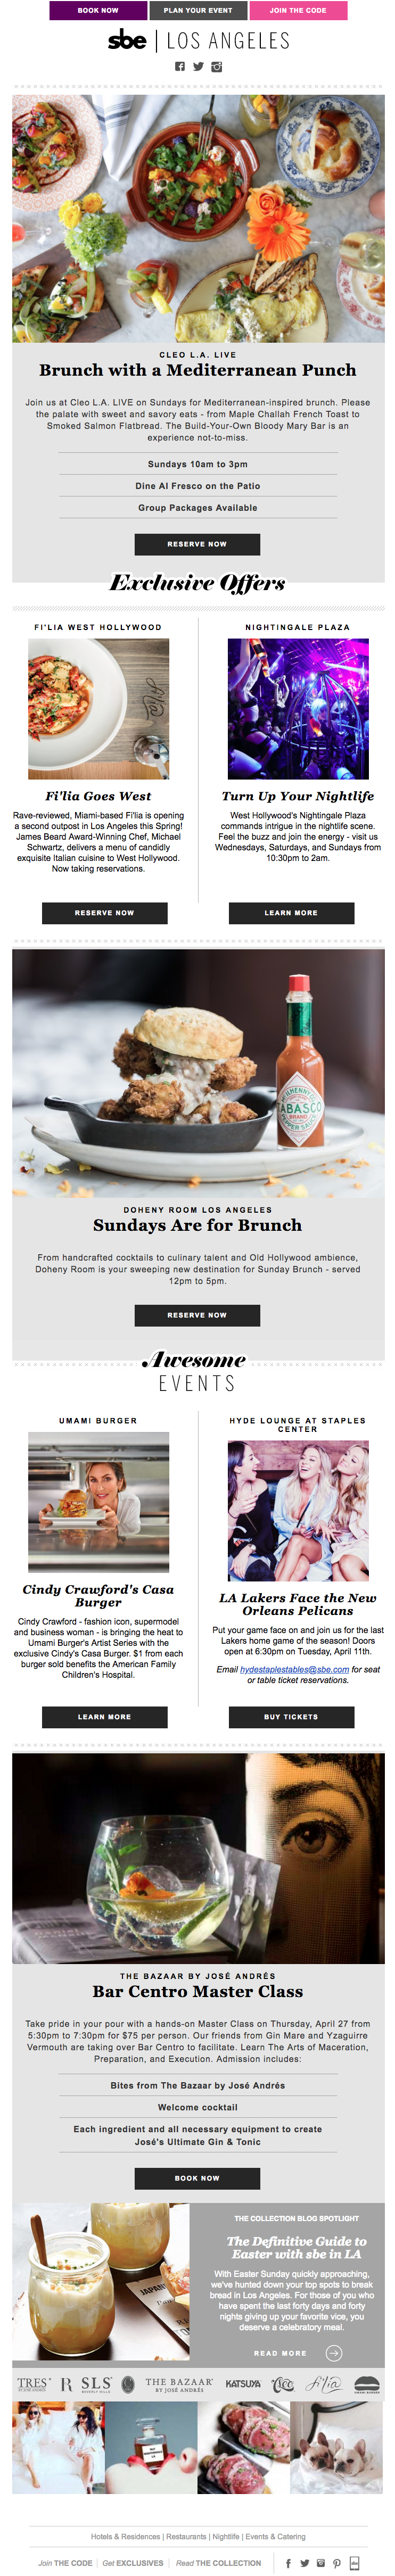 Brunch, Burgers and Brews - brand blast newsletter